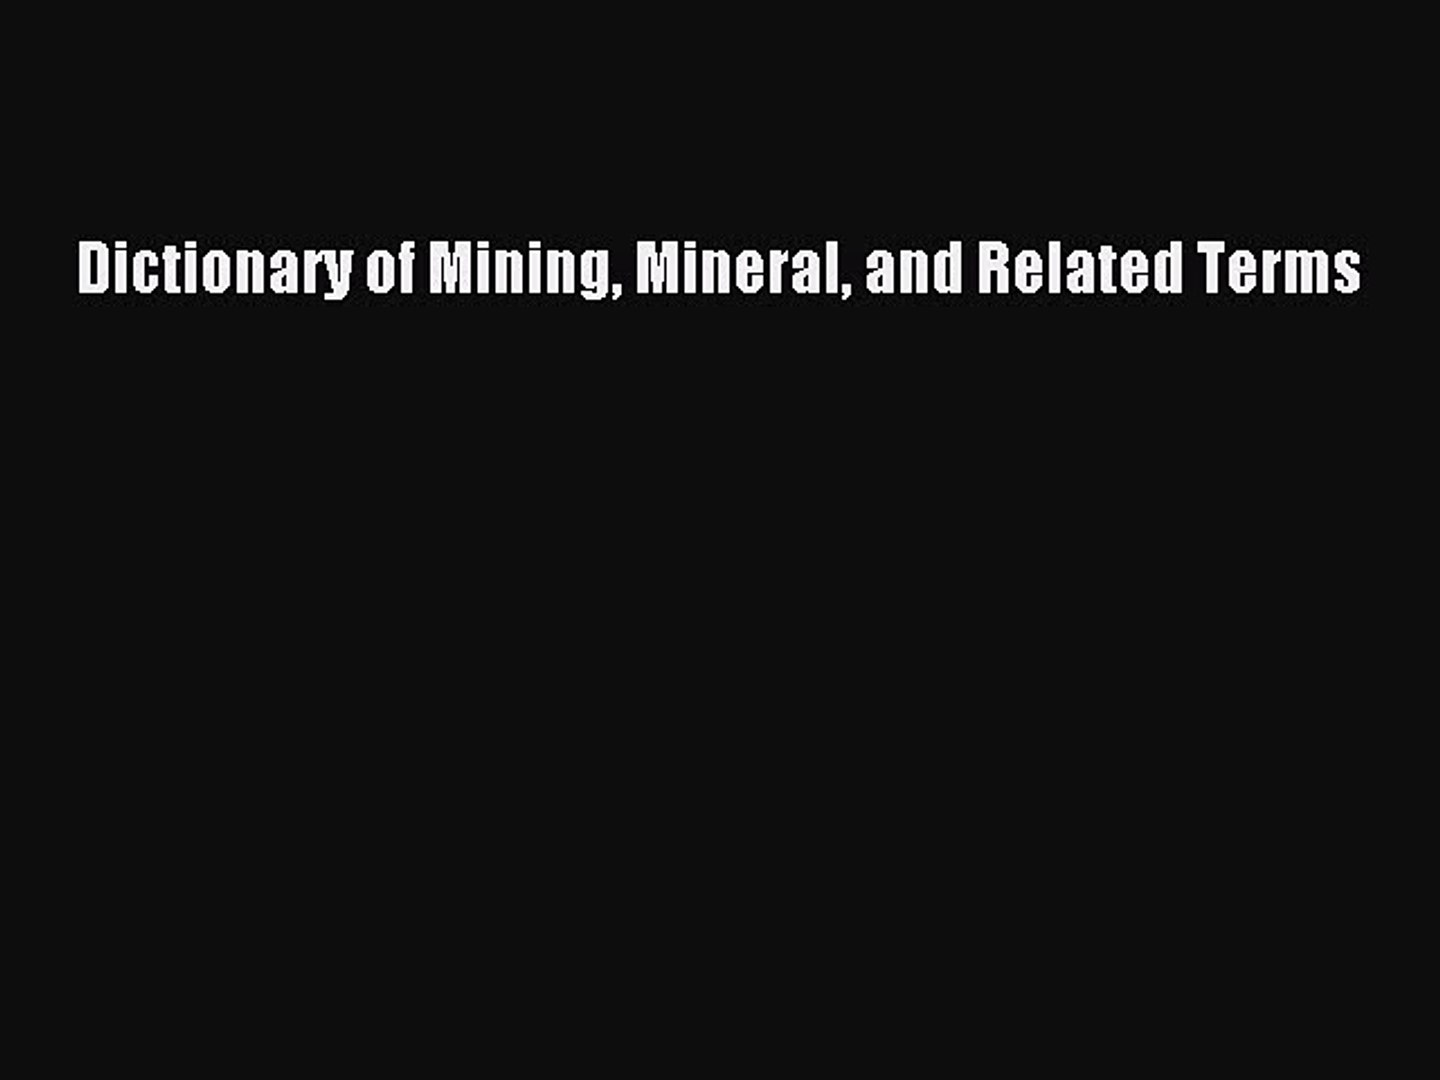 Dictionary of Mining, Mineral, and Related Terms